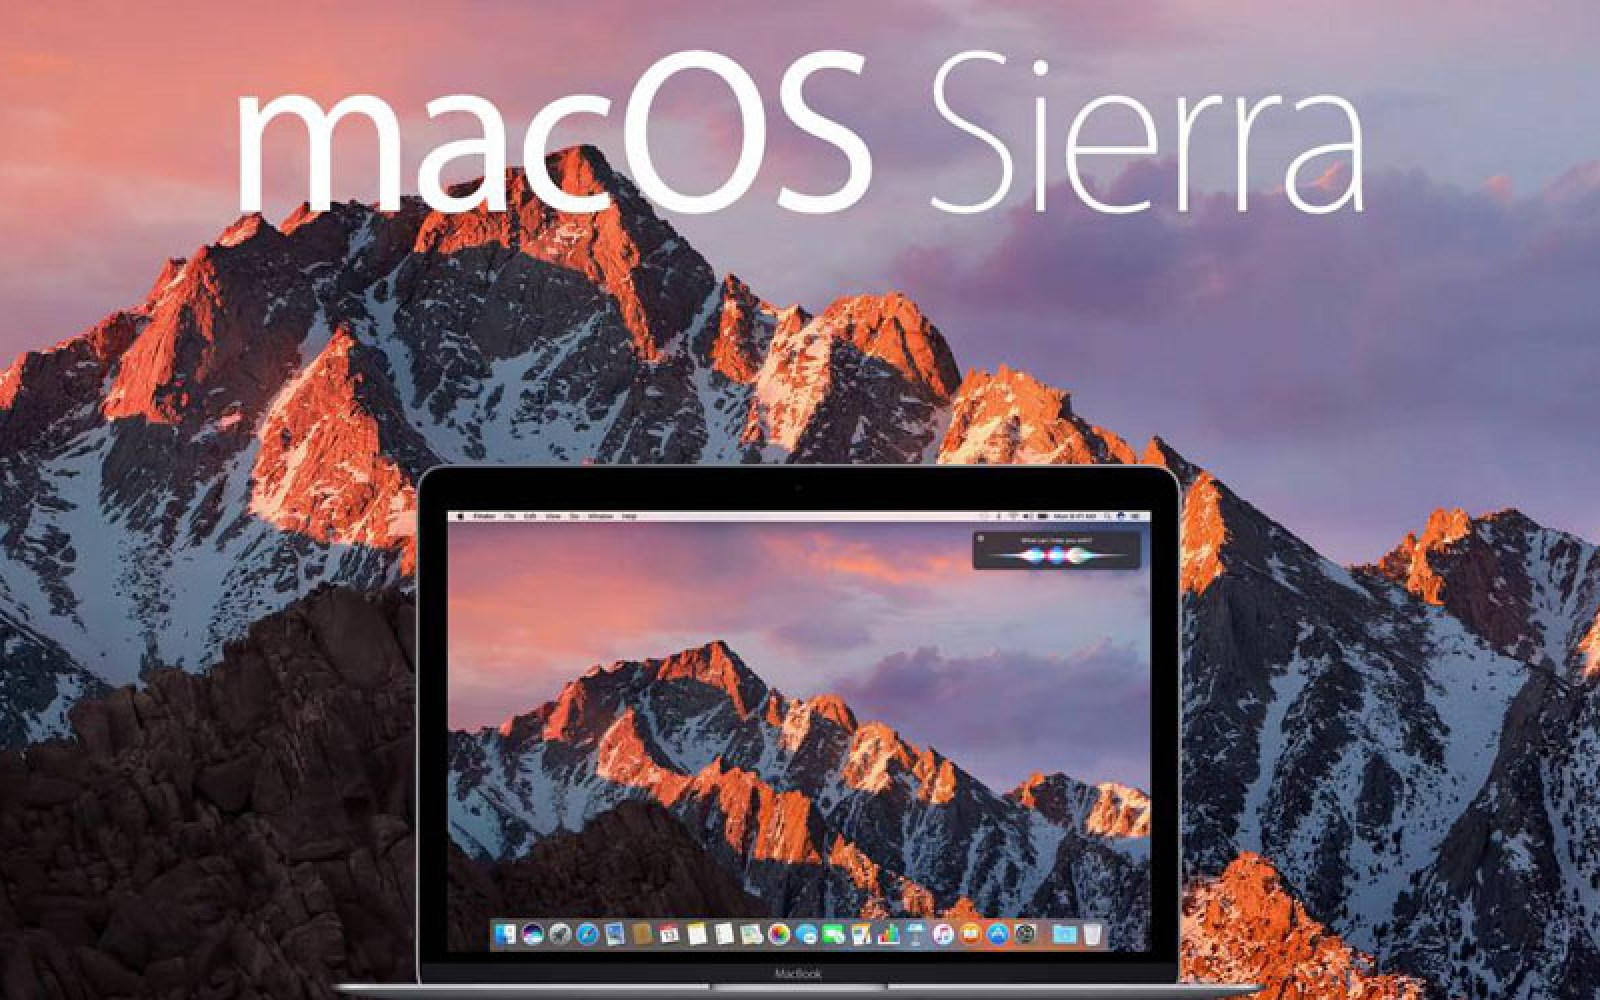 Opinion: macOS Sierra's new storage-management tools are a bit of a mess